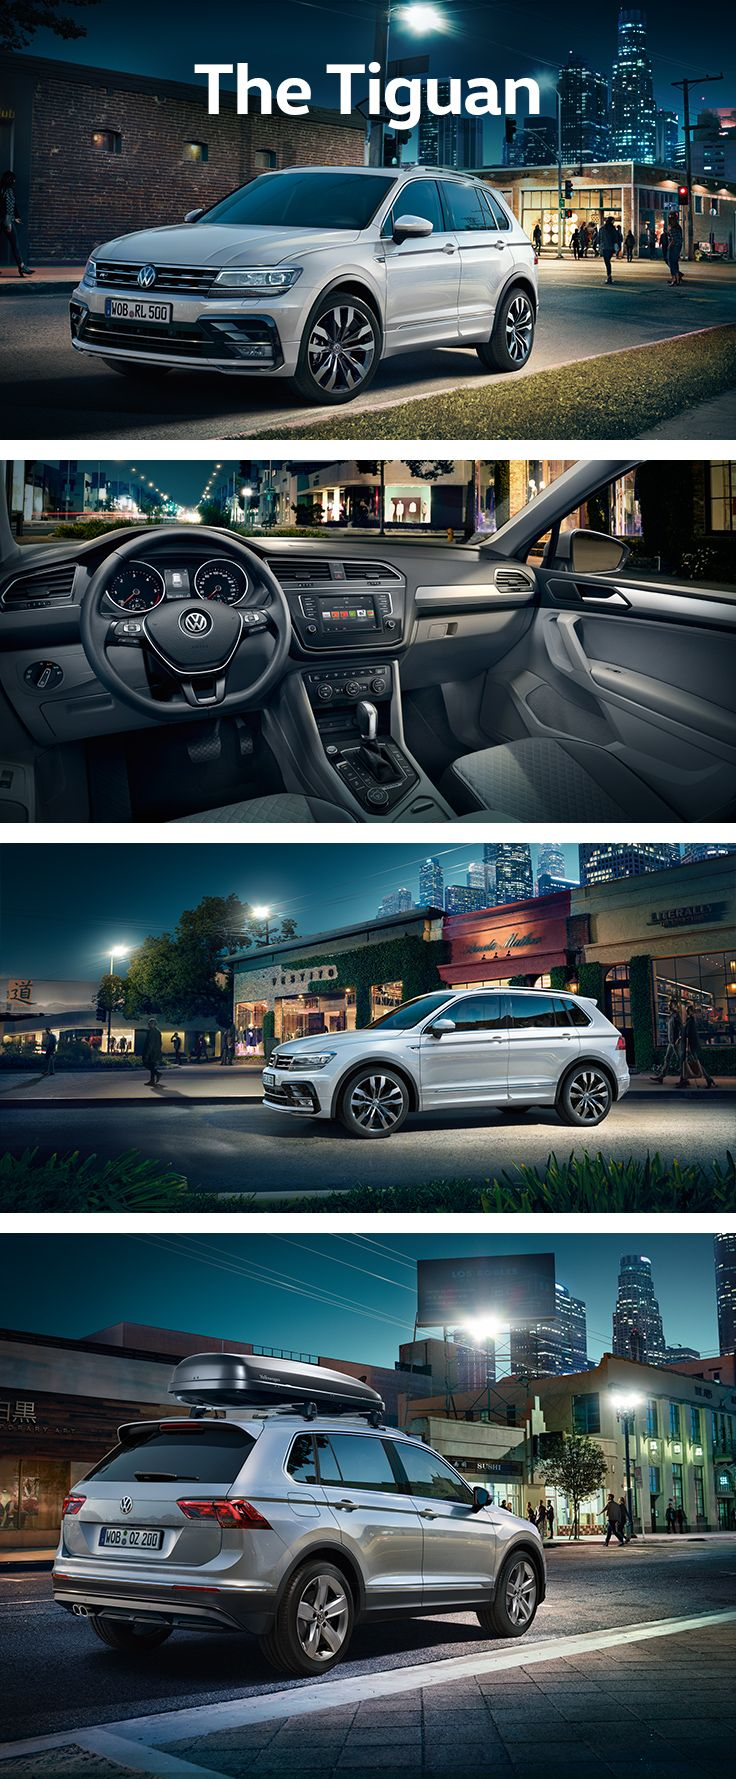 Excited when you step inside. Relaxed when you arrive. The new Volkswagen Tiguan is equipped with intelligent technologies and optional driver assistances systems for accident prevention and to assist you in critical driving situations. These innovative technologies will give you a supremely confident driving feeling.